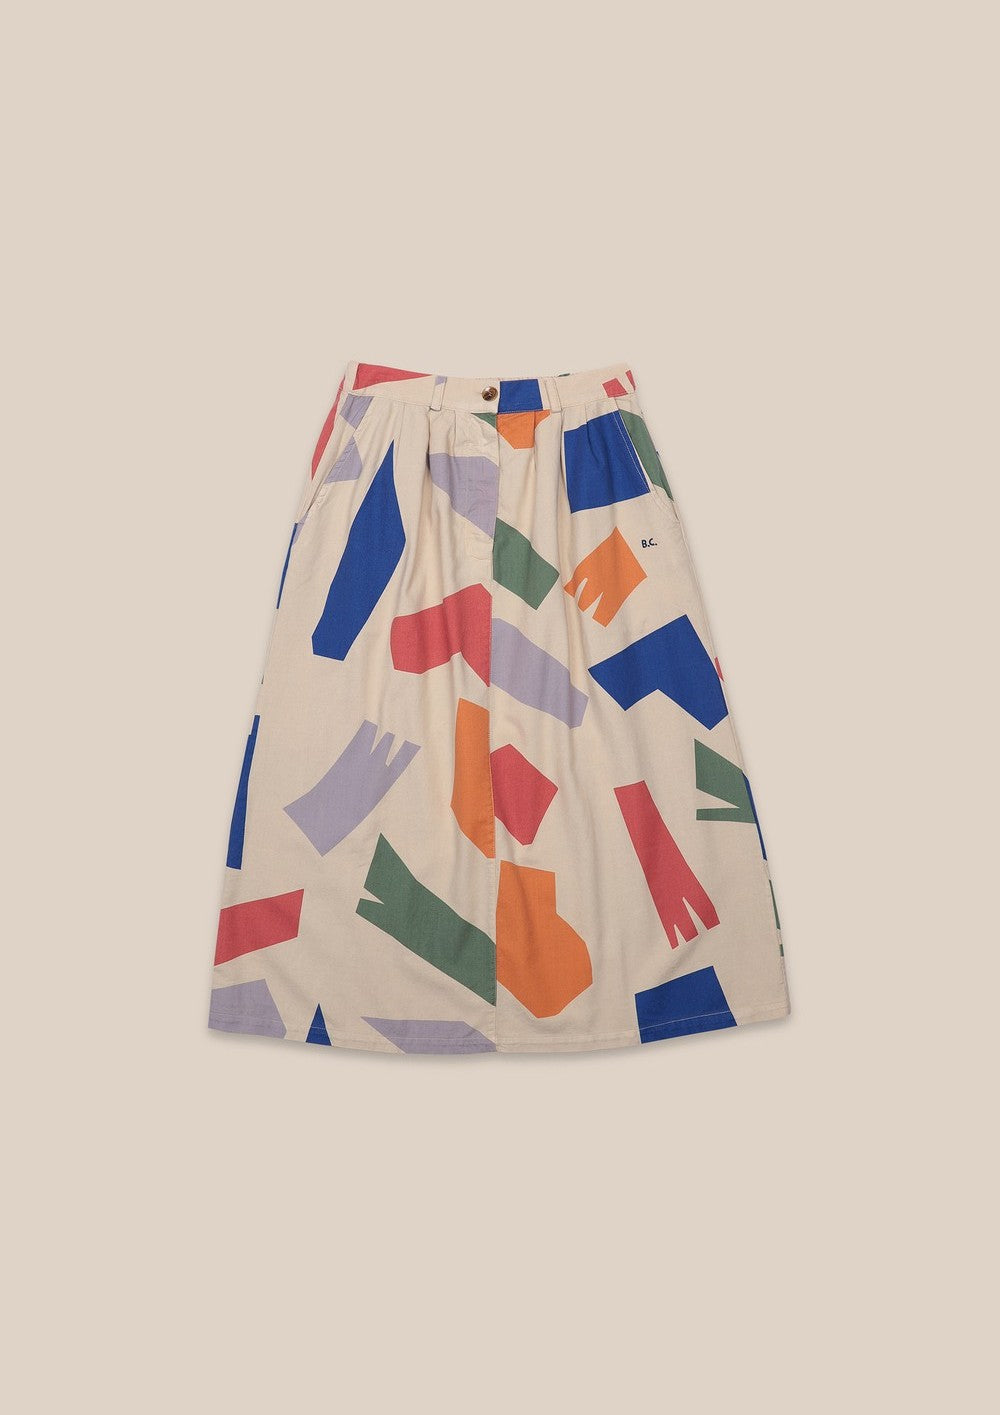 Bobo Choses  Shadows Woven Skirt / women